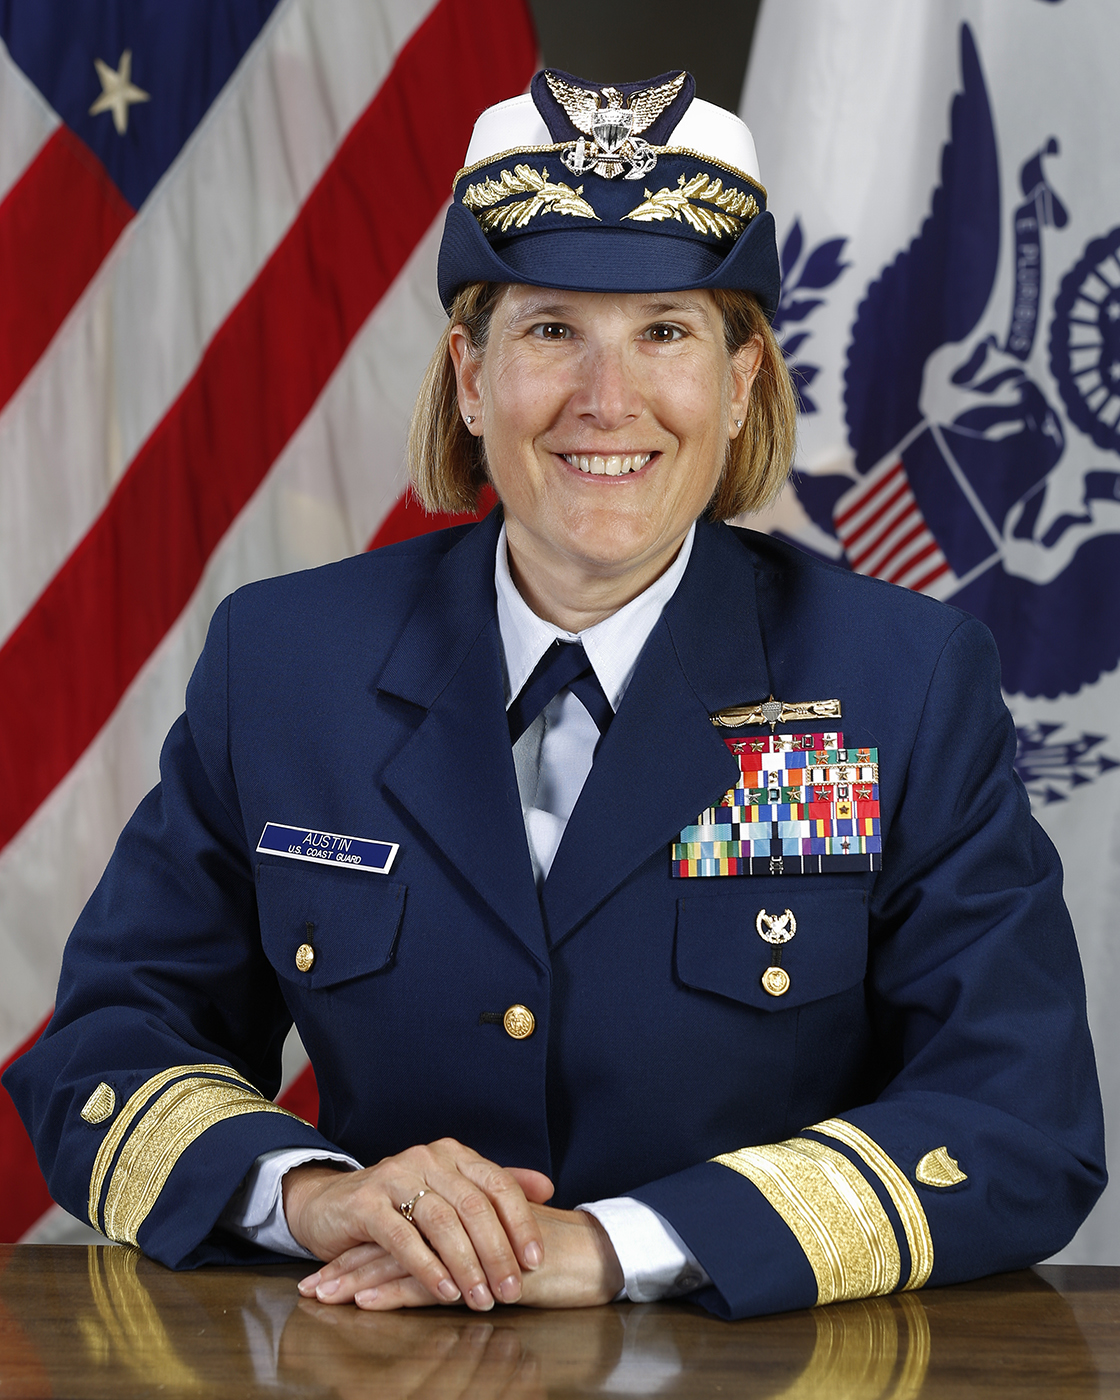 Photo of Rear Admiral Meredith Austin